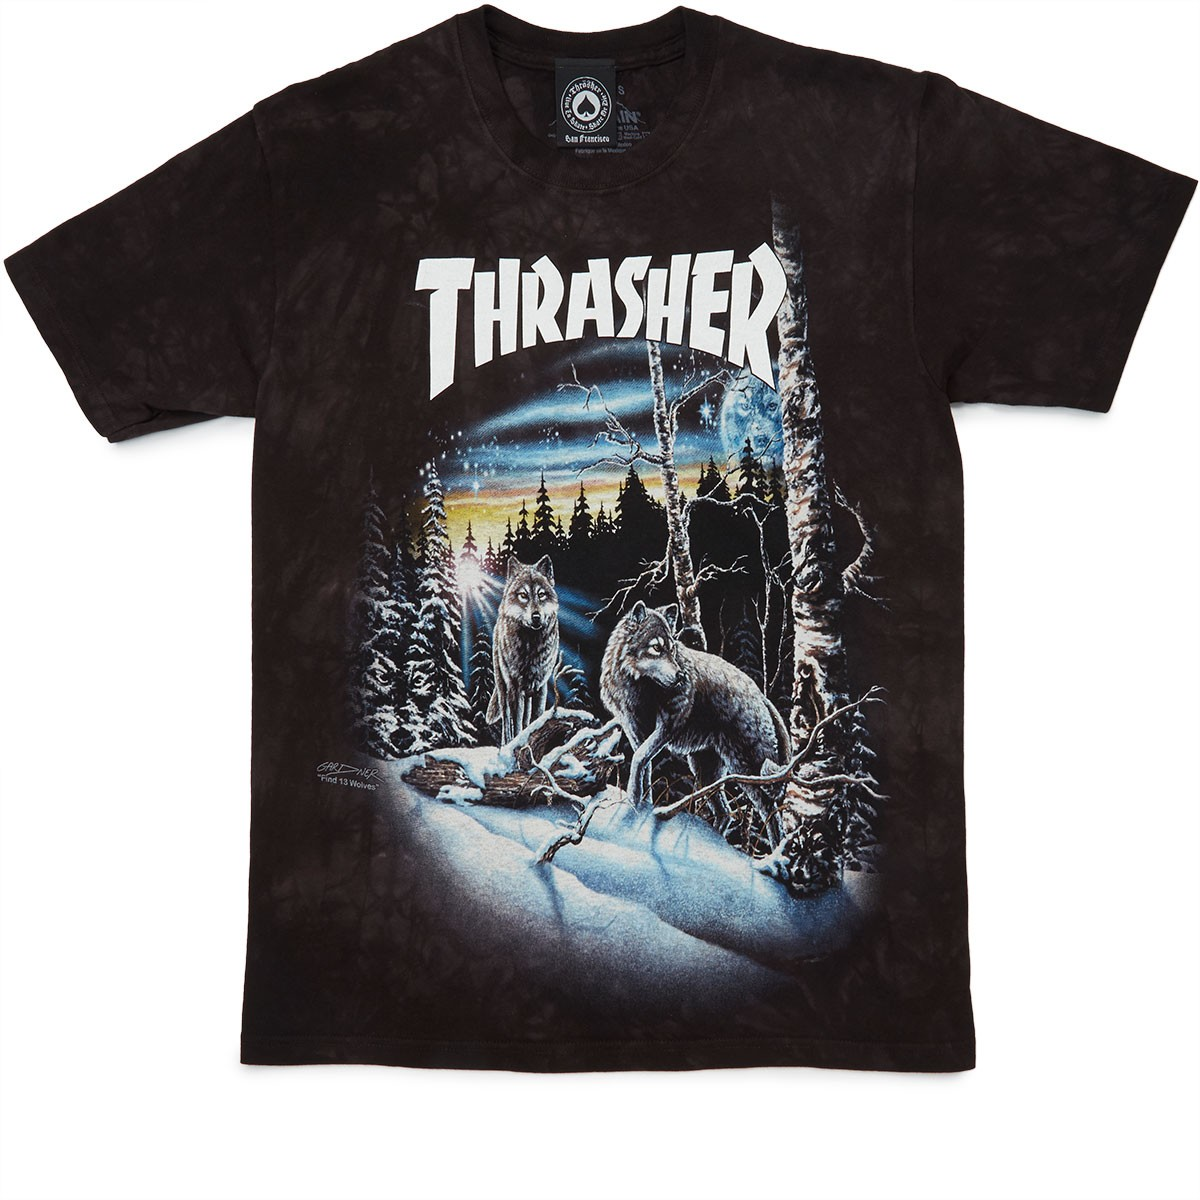 134520204e4d Thrasher 13 Wolves T-Shirt - Black Tie-Dye